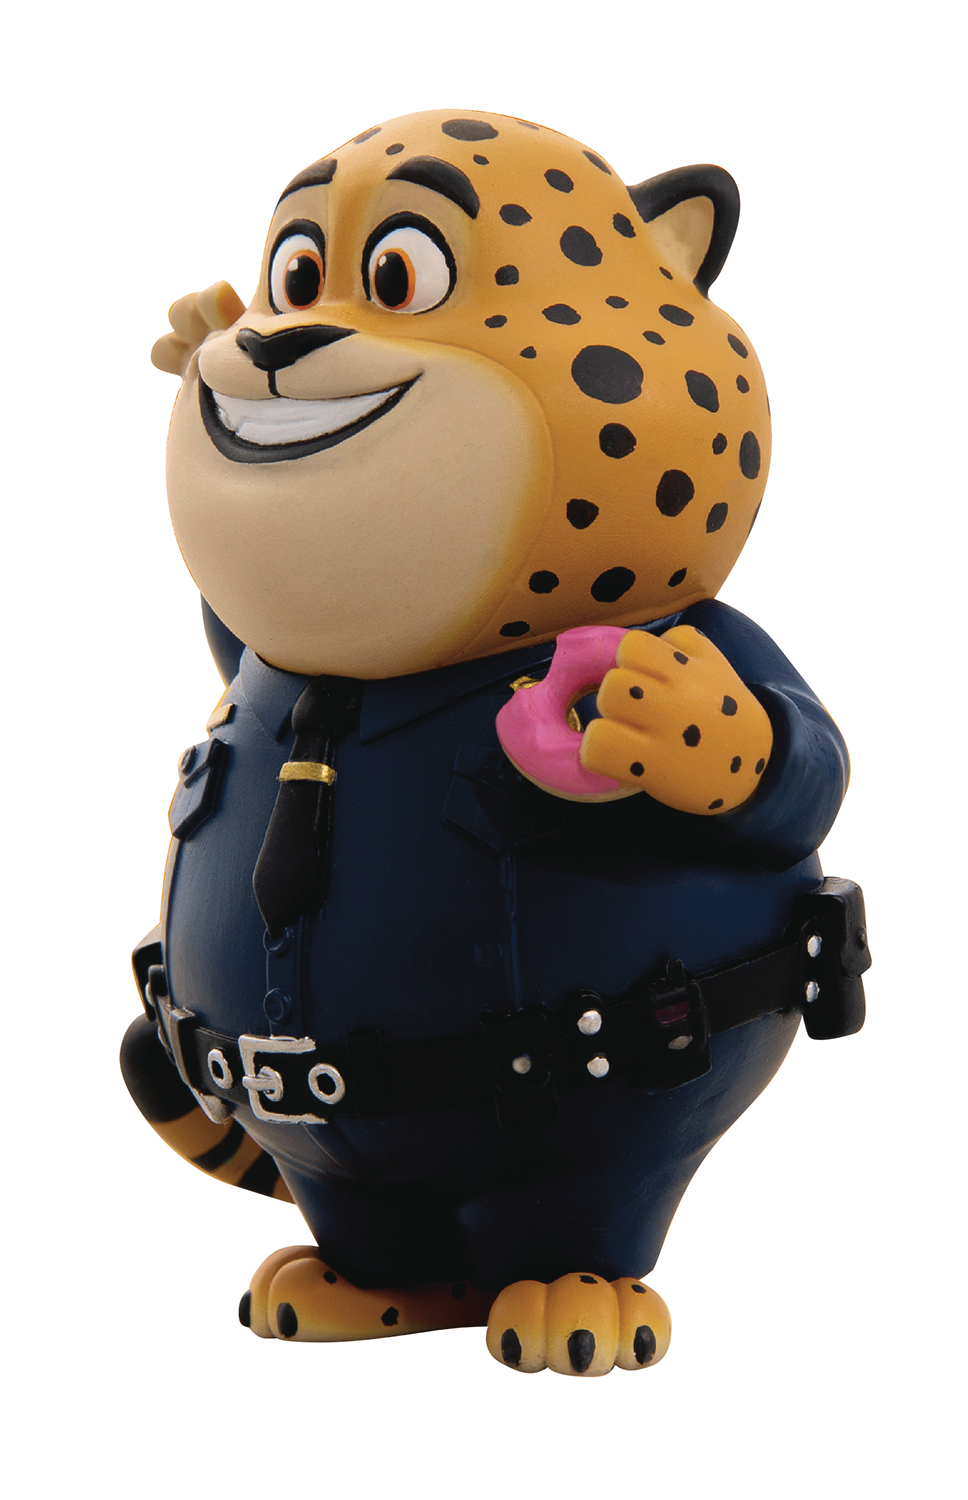 DISNEY ZOOTOPIA MEA-006 CLAWHAUSER PX FIG